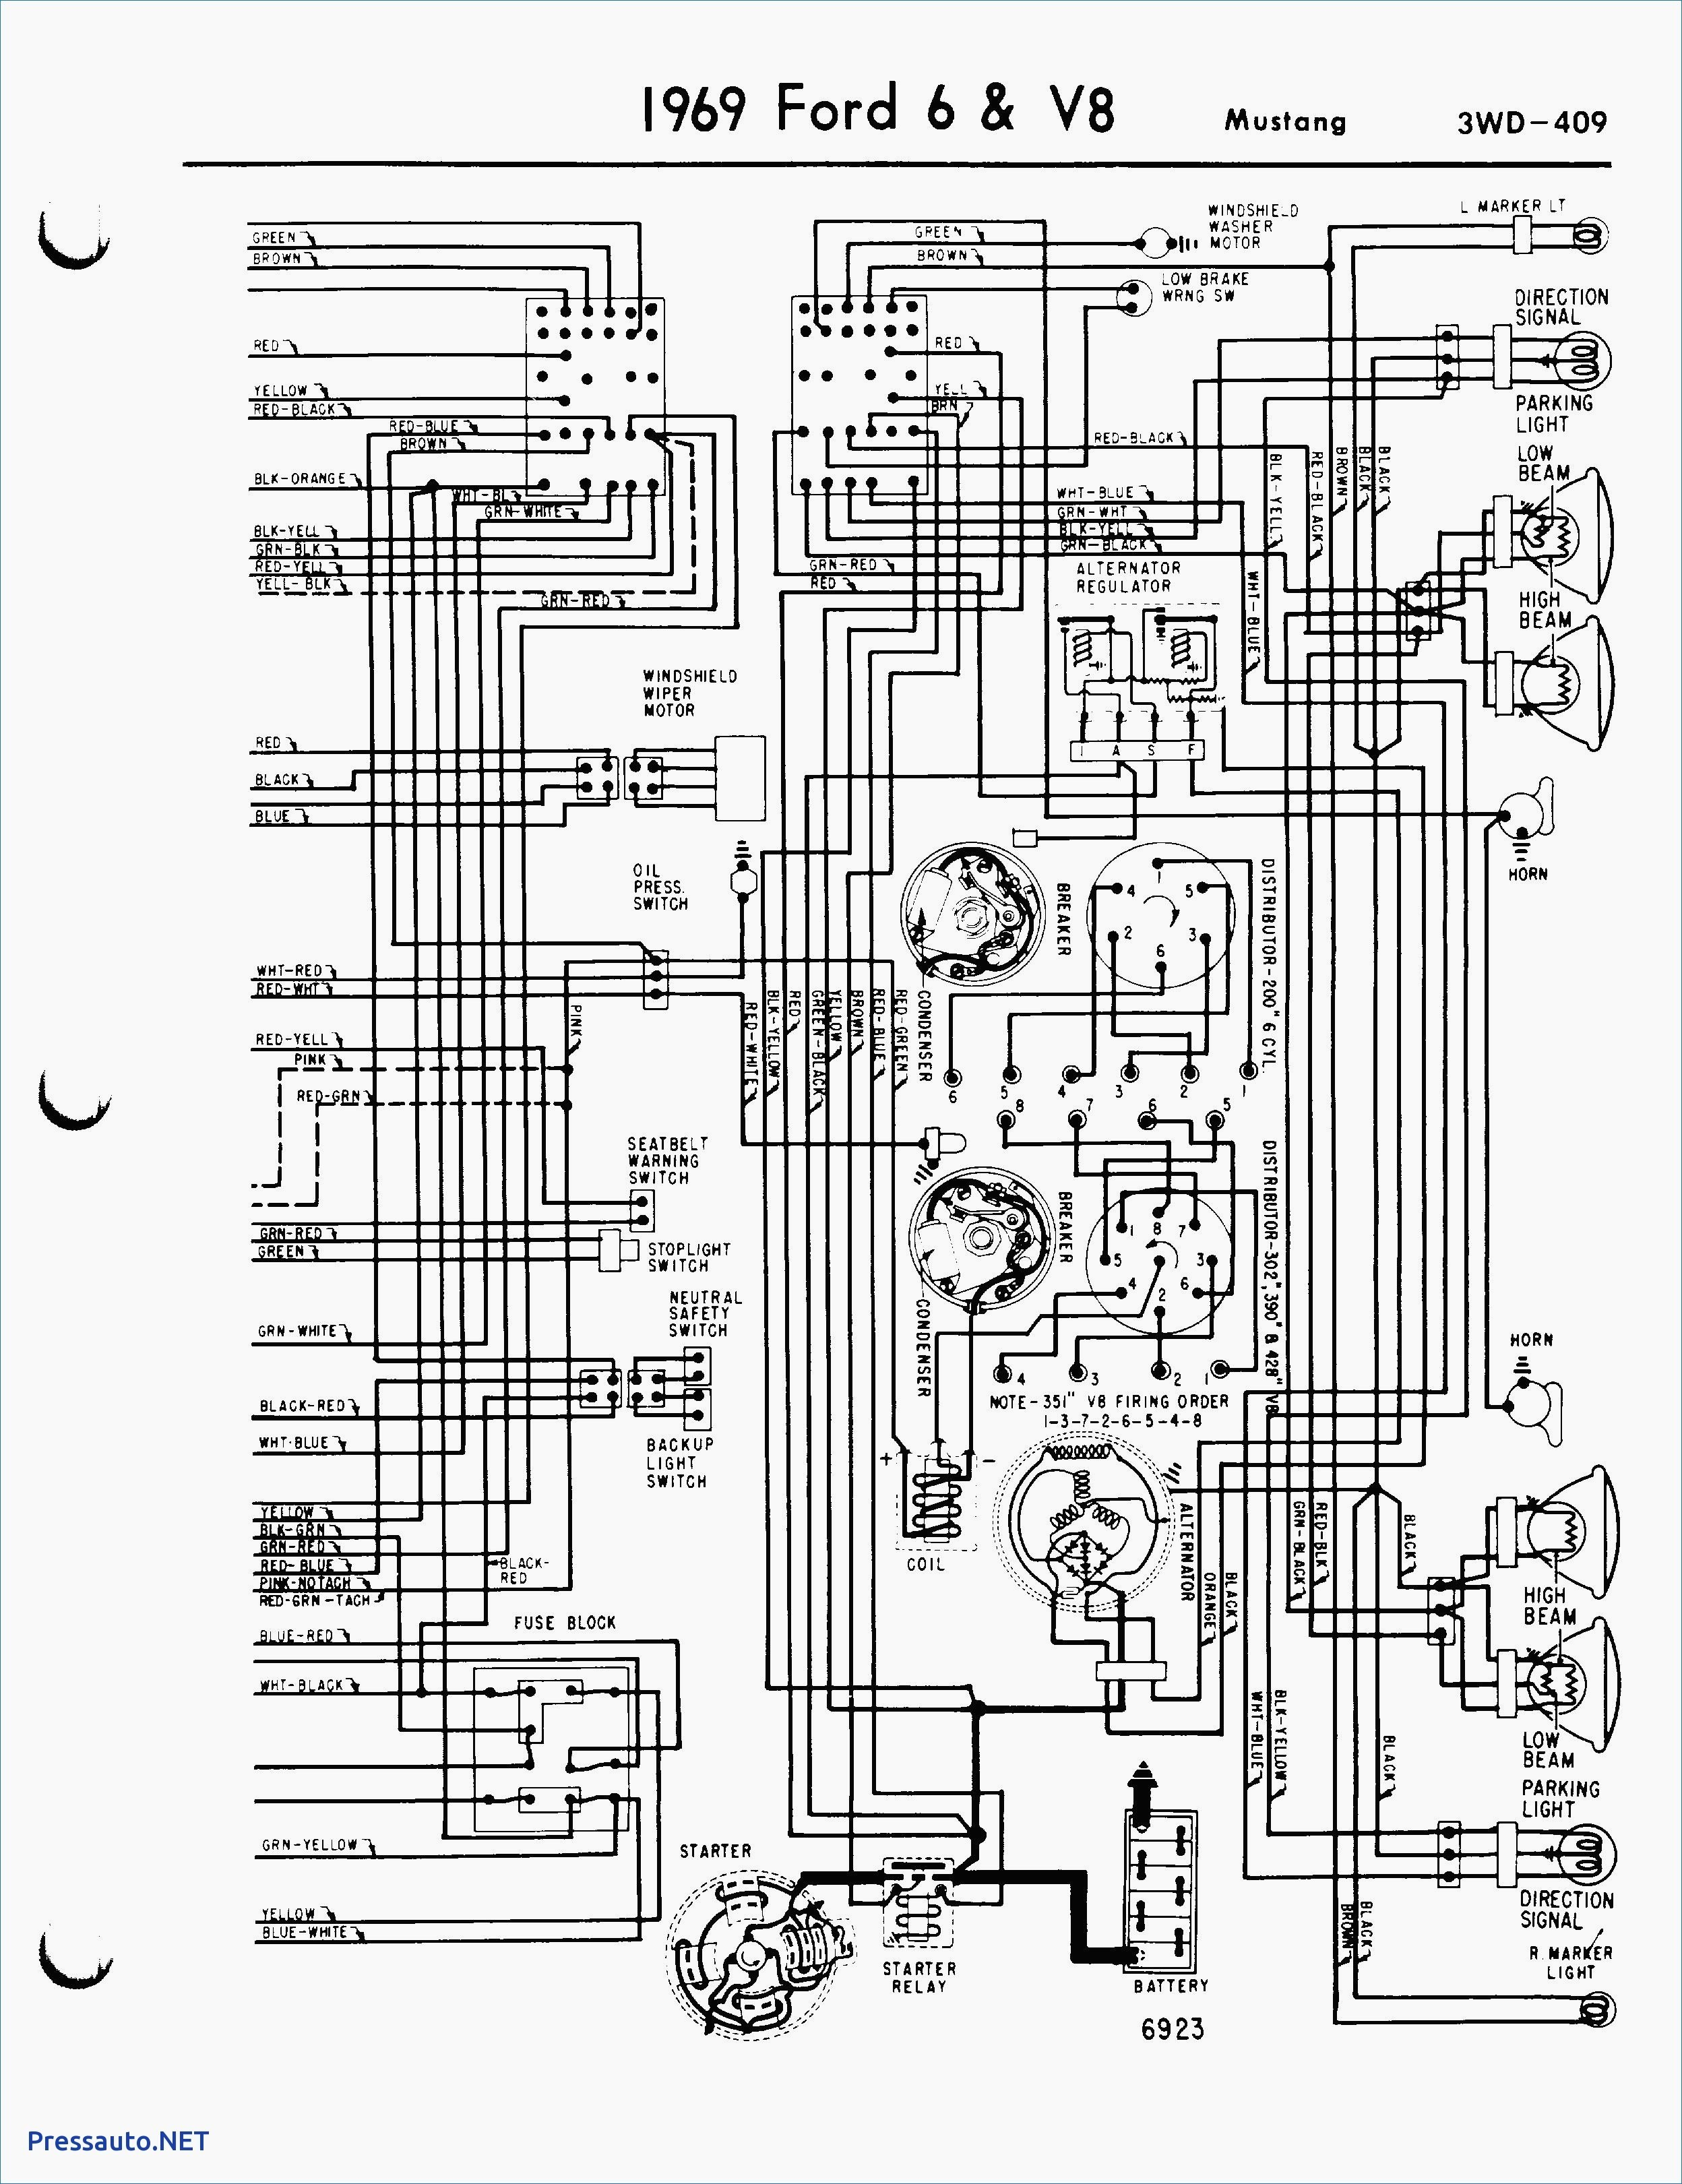 Delco Remy Alternator External Regulator Diesel Tractor Wiring Diagram Kubota Librarywiring Voltage Best Lucas